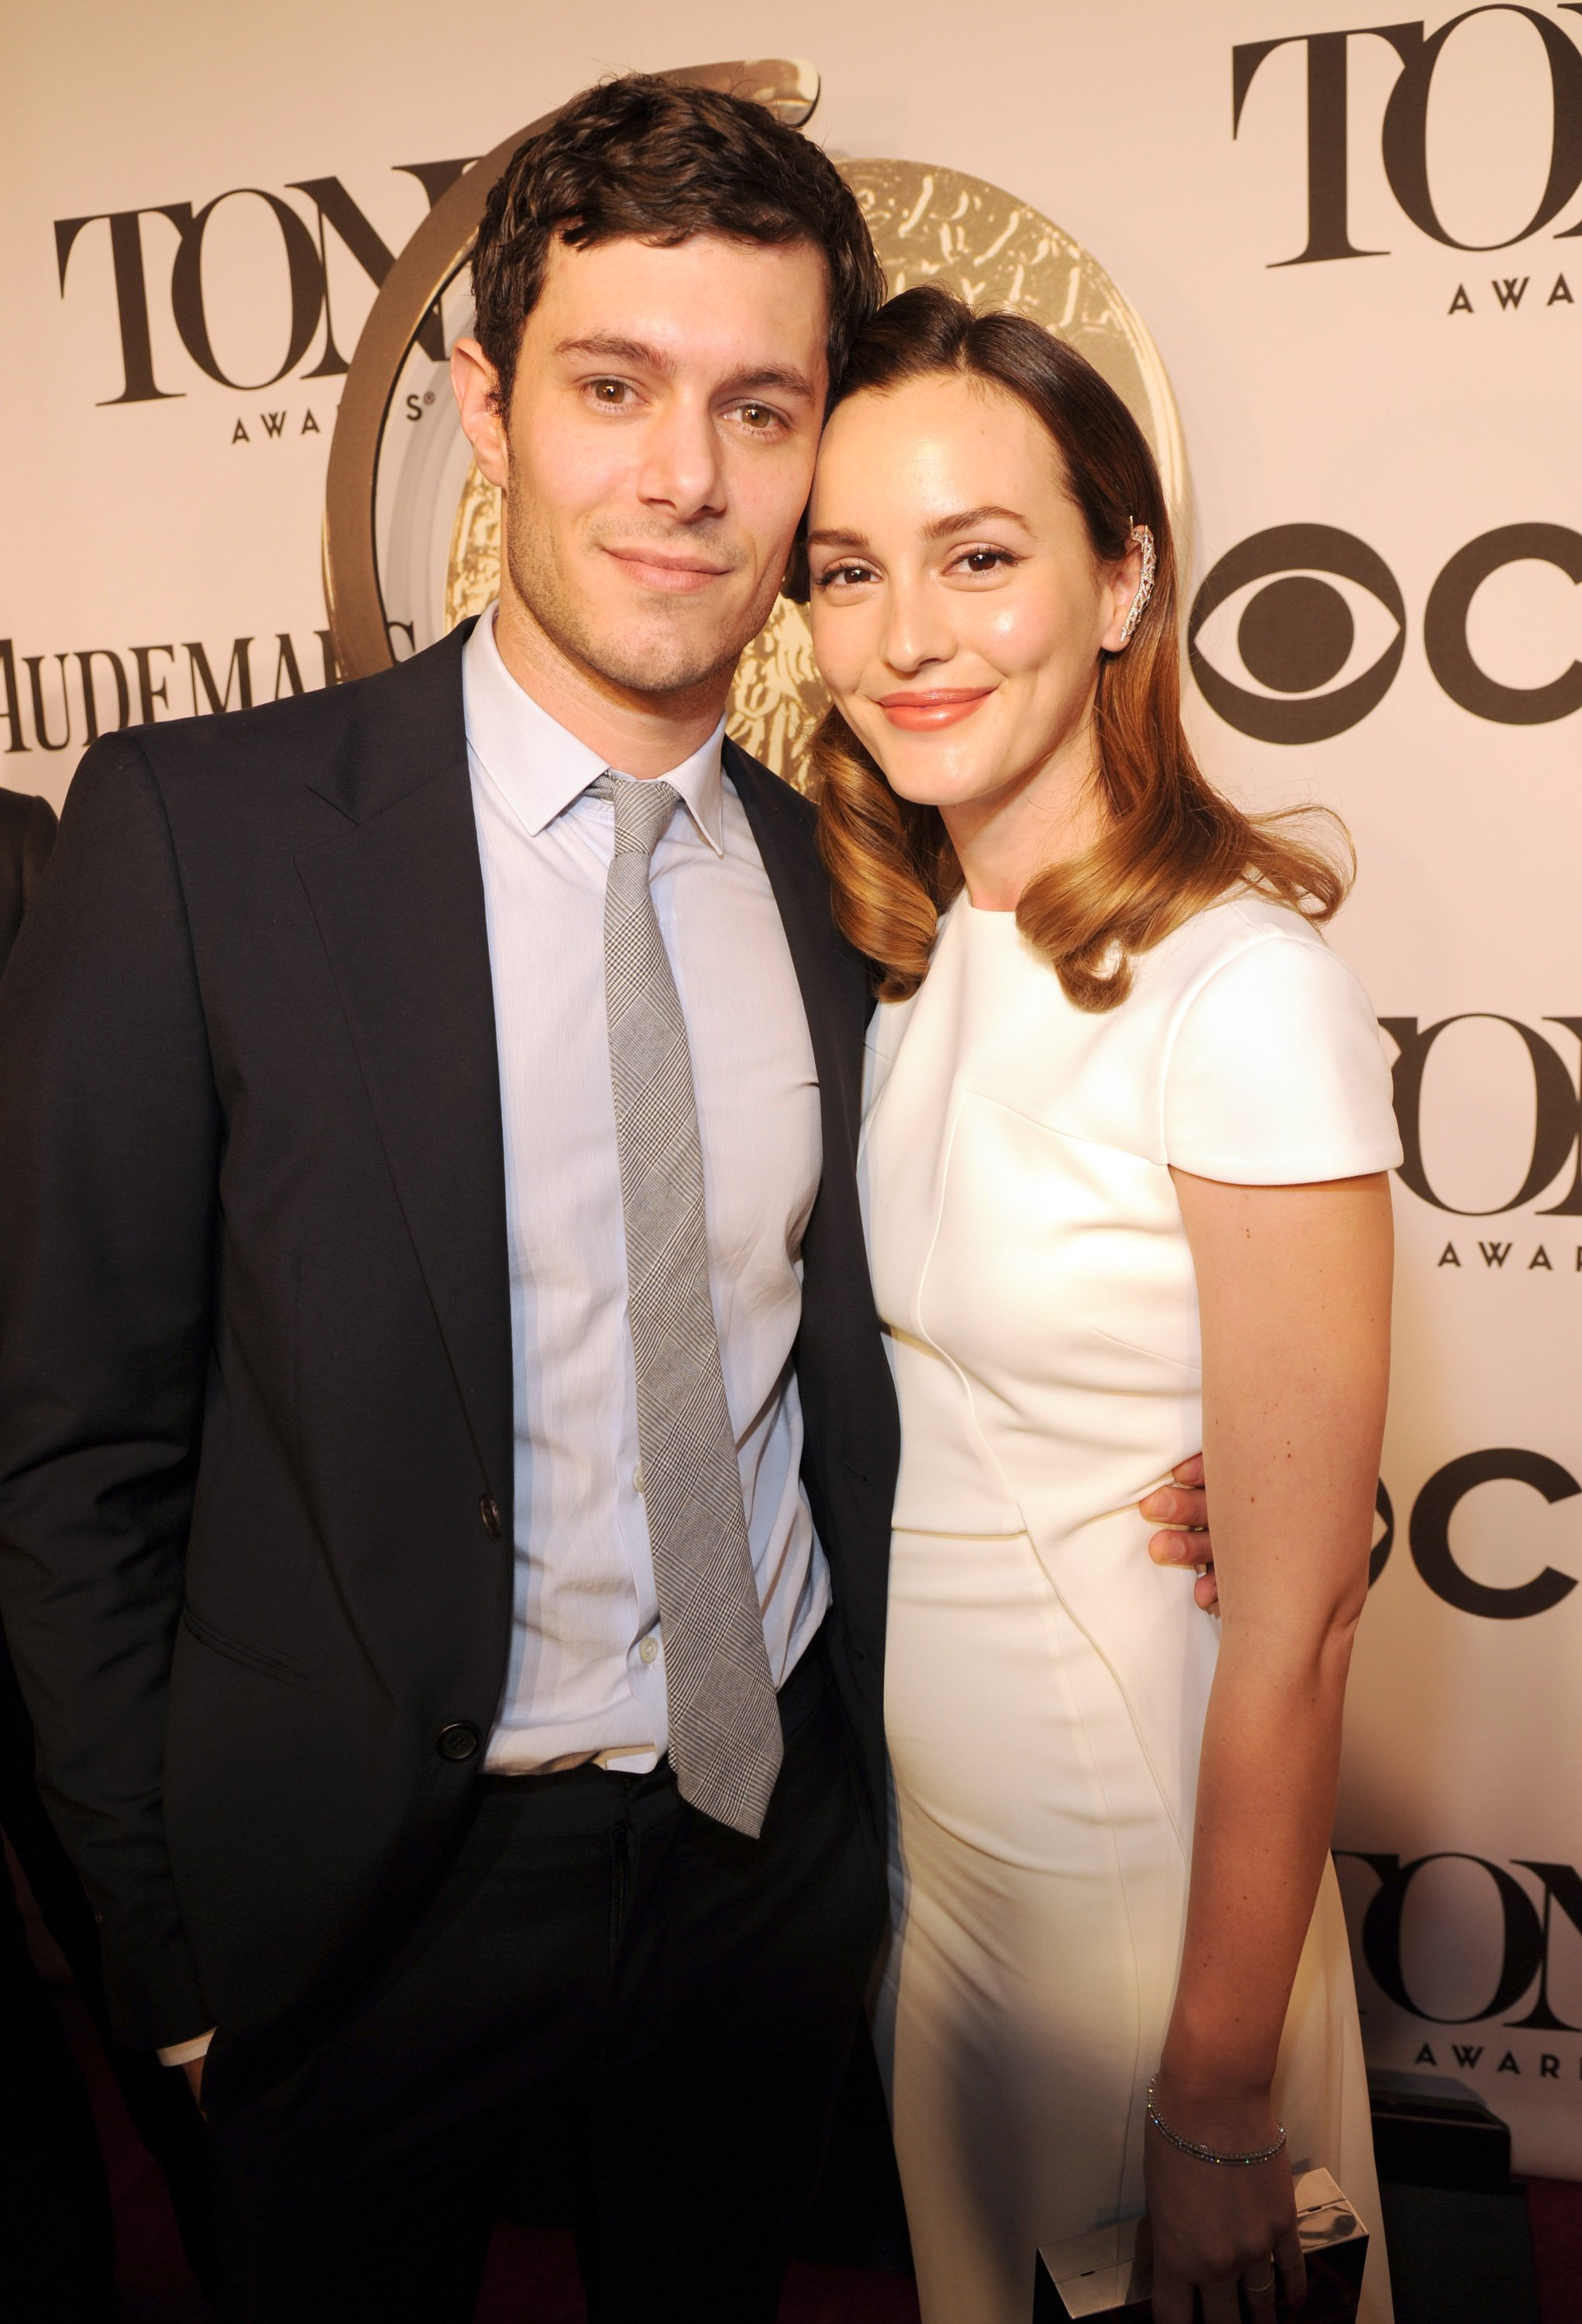 Adam Brody und Leighton Meester bei den 68th Annual Tony Awards des American Theatre Wing, Juni 2014   Quelle: Getty Images